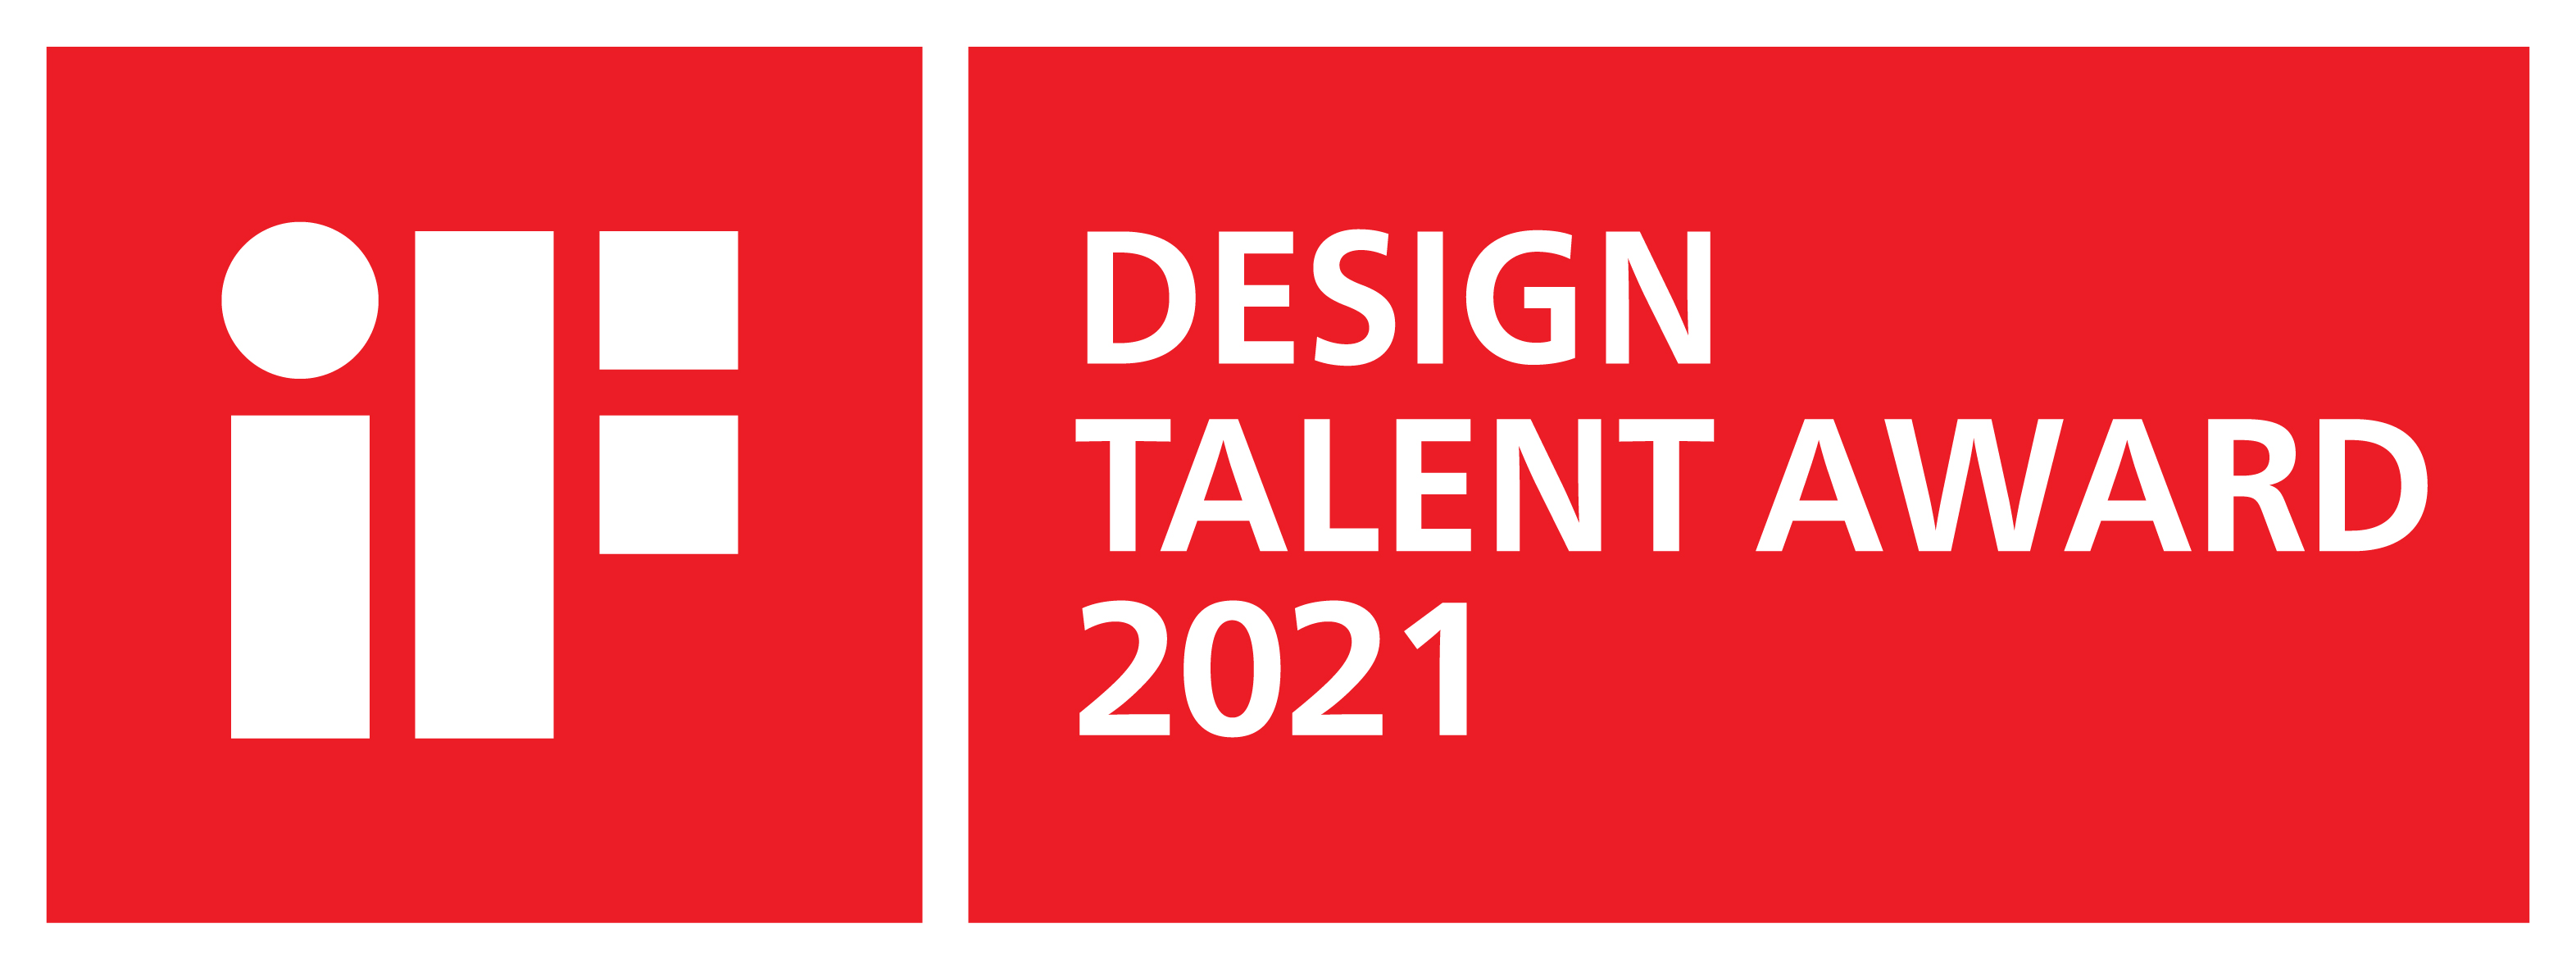 iF DESIGN TALENT AWARD_02 2021